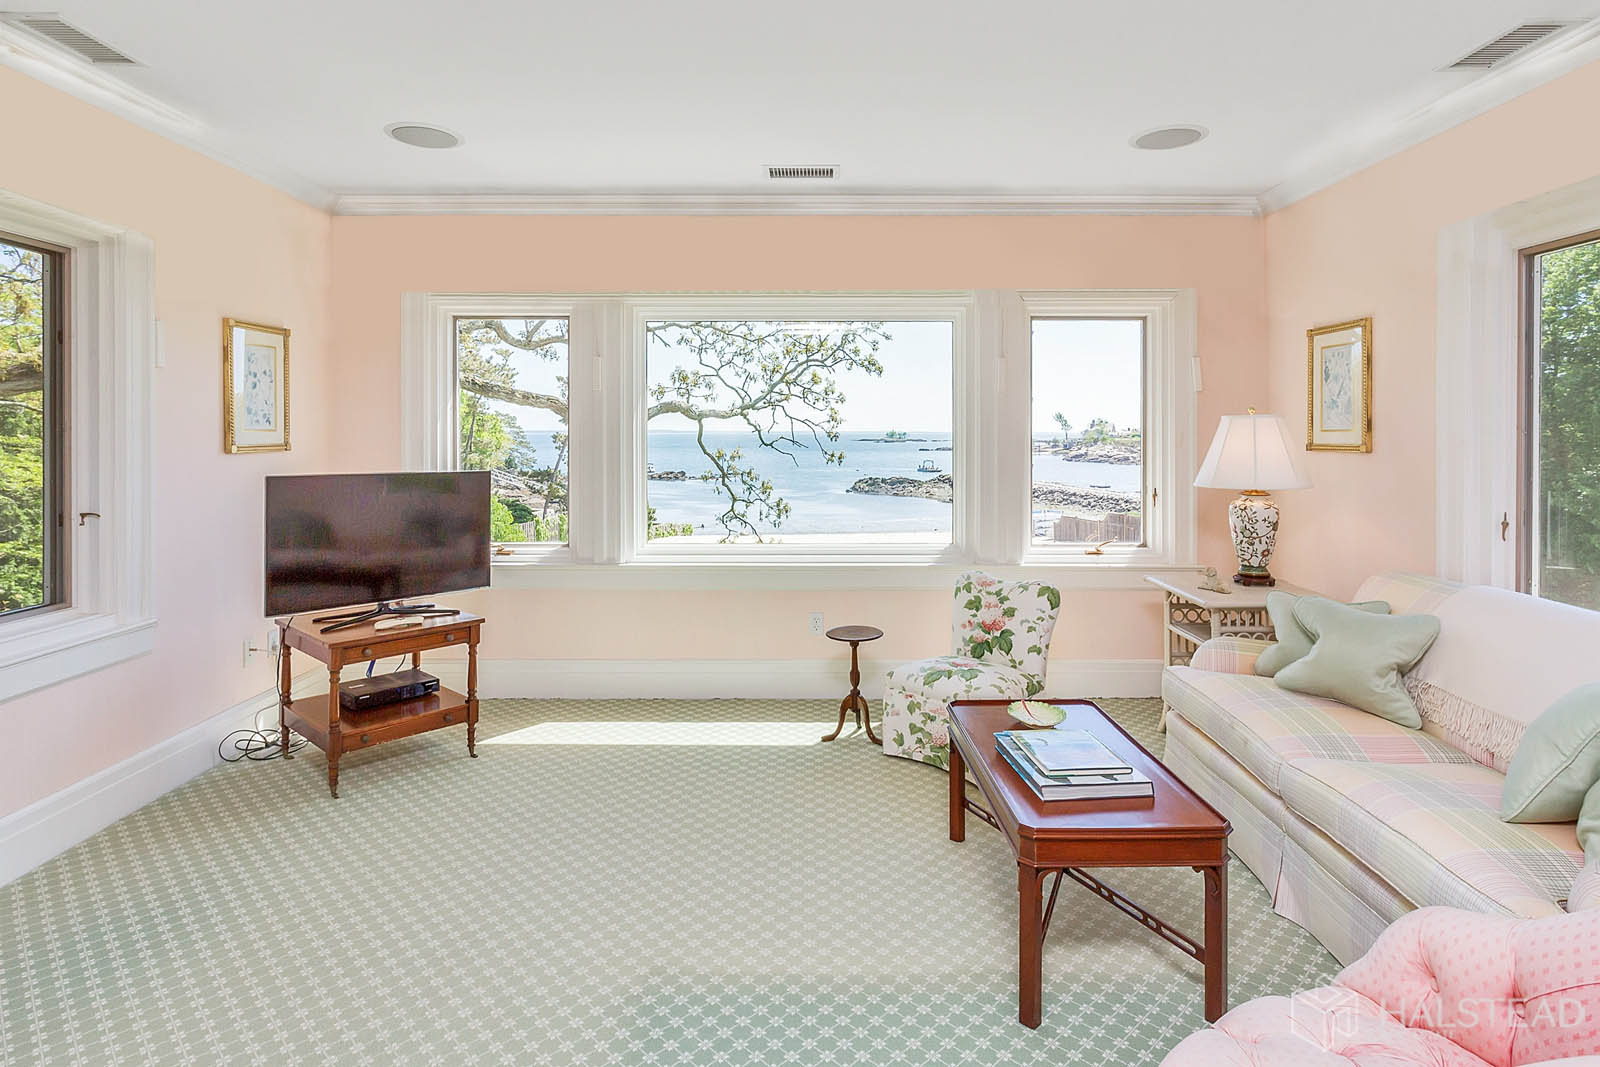 8 Butlers Island Road, Darien, Connecticut, 06820, $7,495,000, Property For Sale, Halstead Real Estate, Photo 25